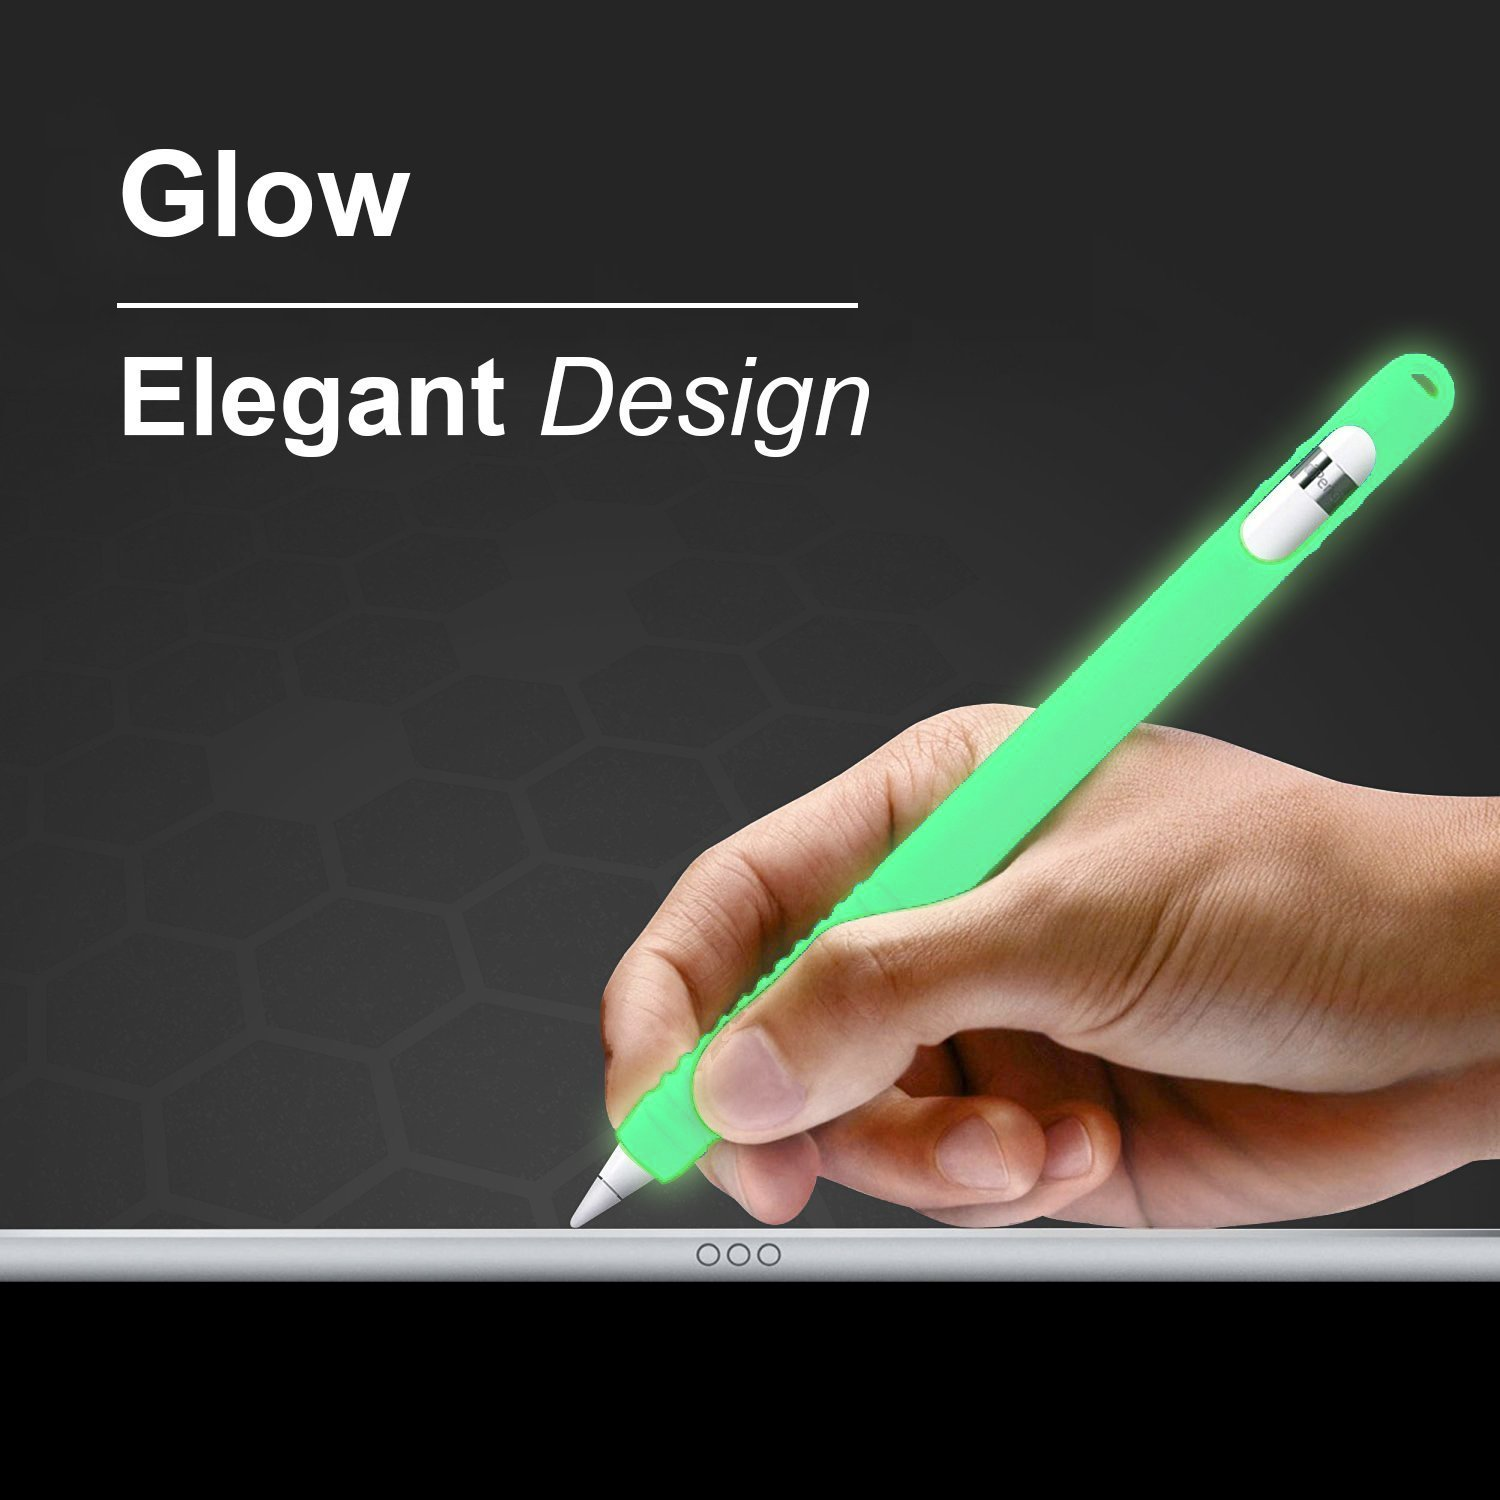 Glow in the Dark Version Transparent Green InventCase Silicone Protective Grip Case Cover for Apple Pencil iPad Pro Stylus Pen Styli